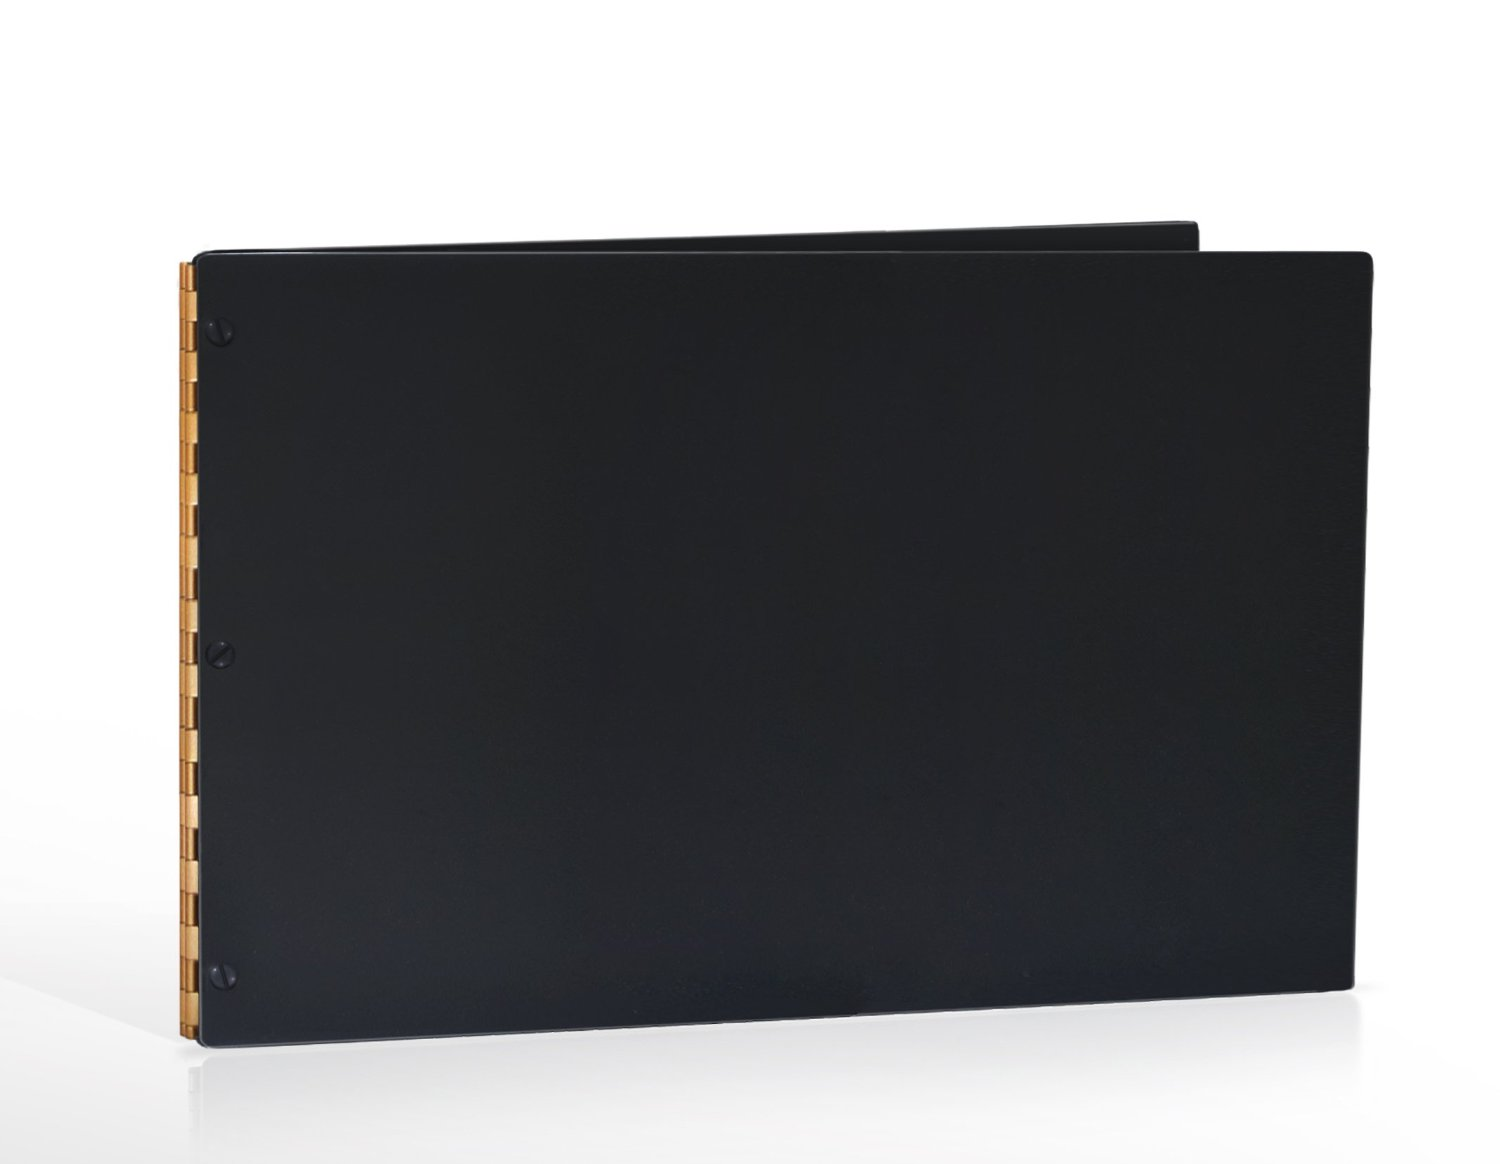 11x17 Landscape Matte Black Portfolio with Gold Hinges. Portfolio book, Screw post portfolio, Portfolio Presentation. Engraving services are not included.